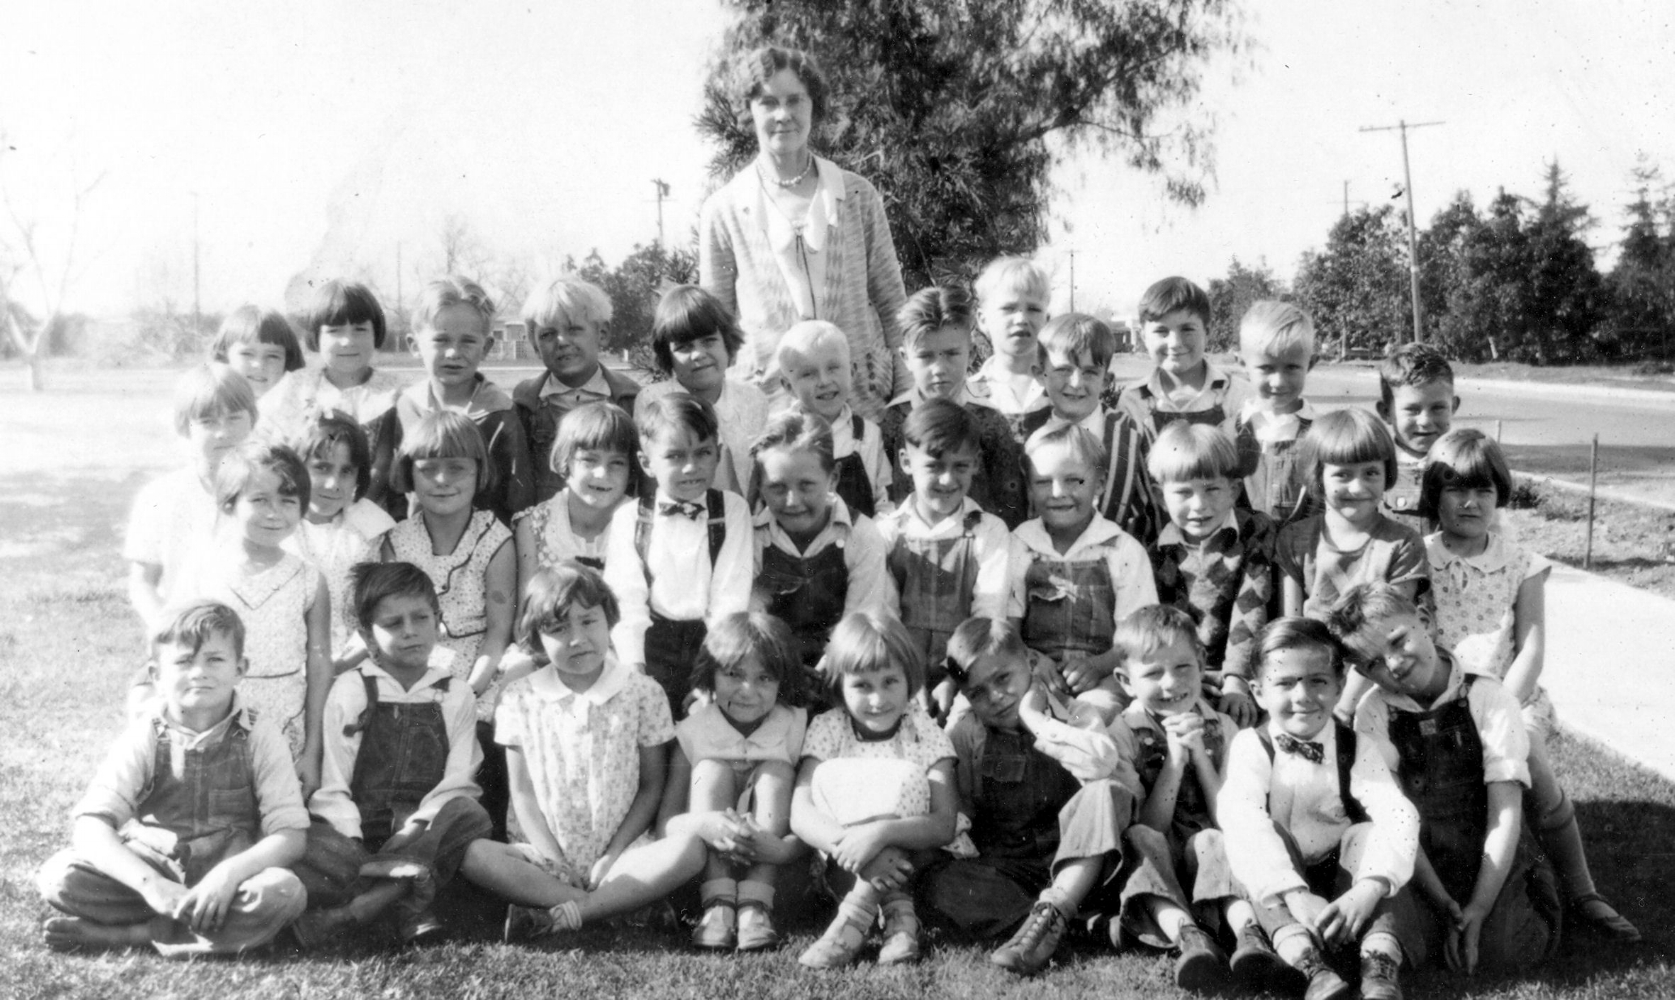 First Grade students at West Orange School, 1930 (courtesy the Orange Public Library and History Center).